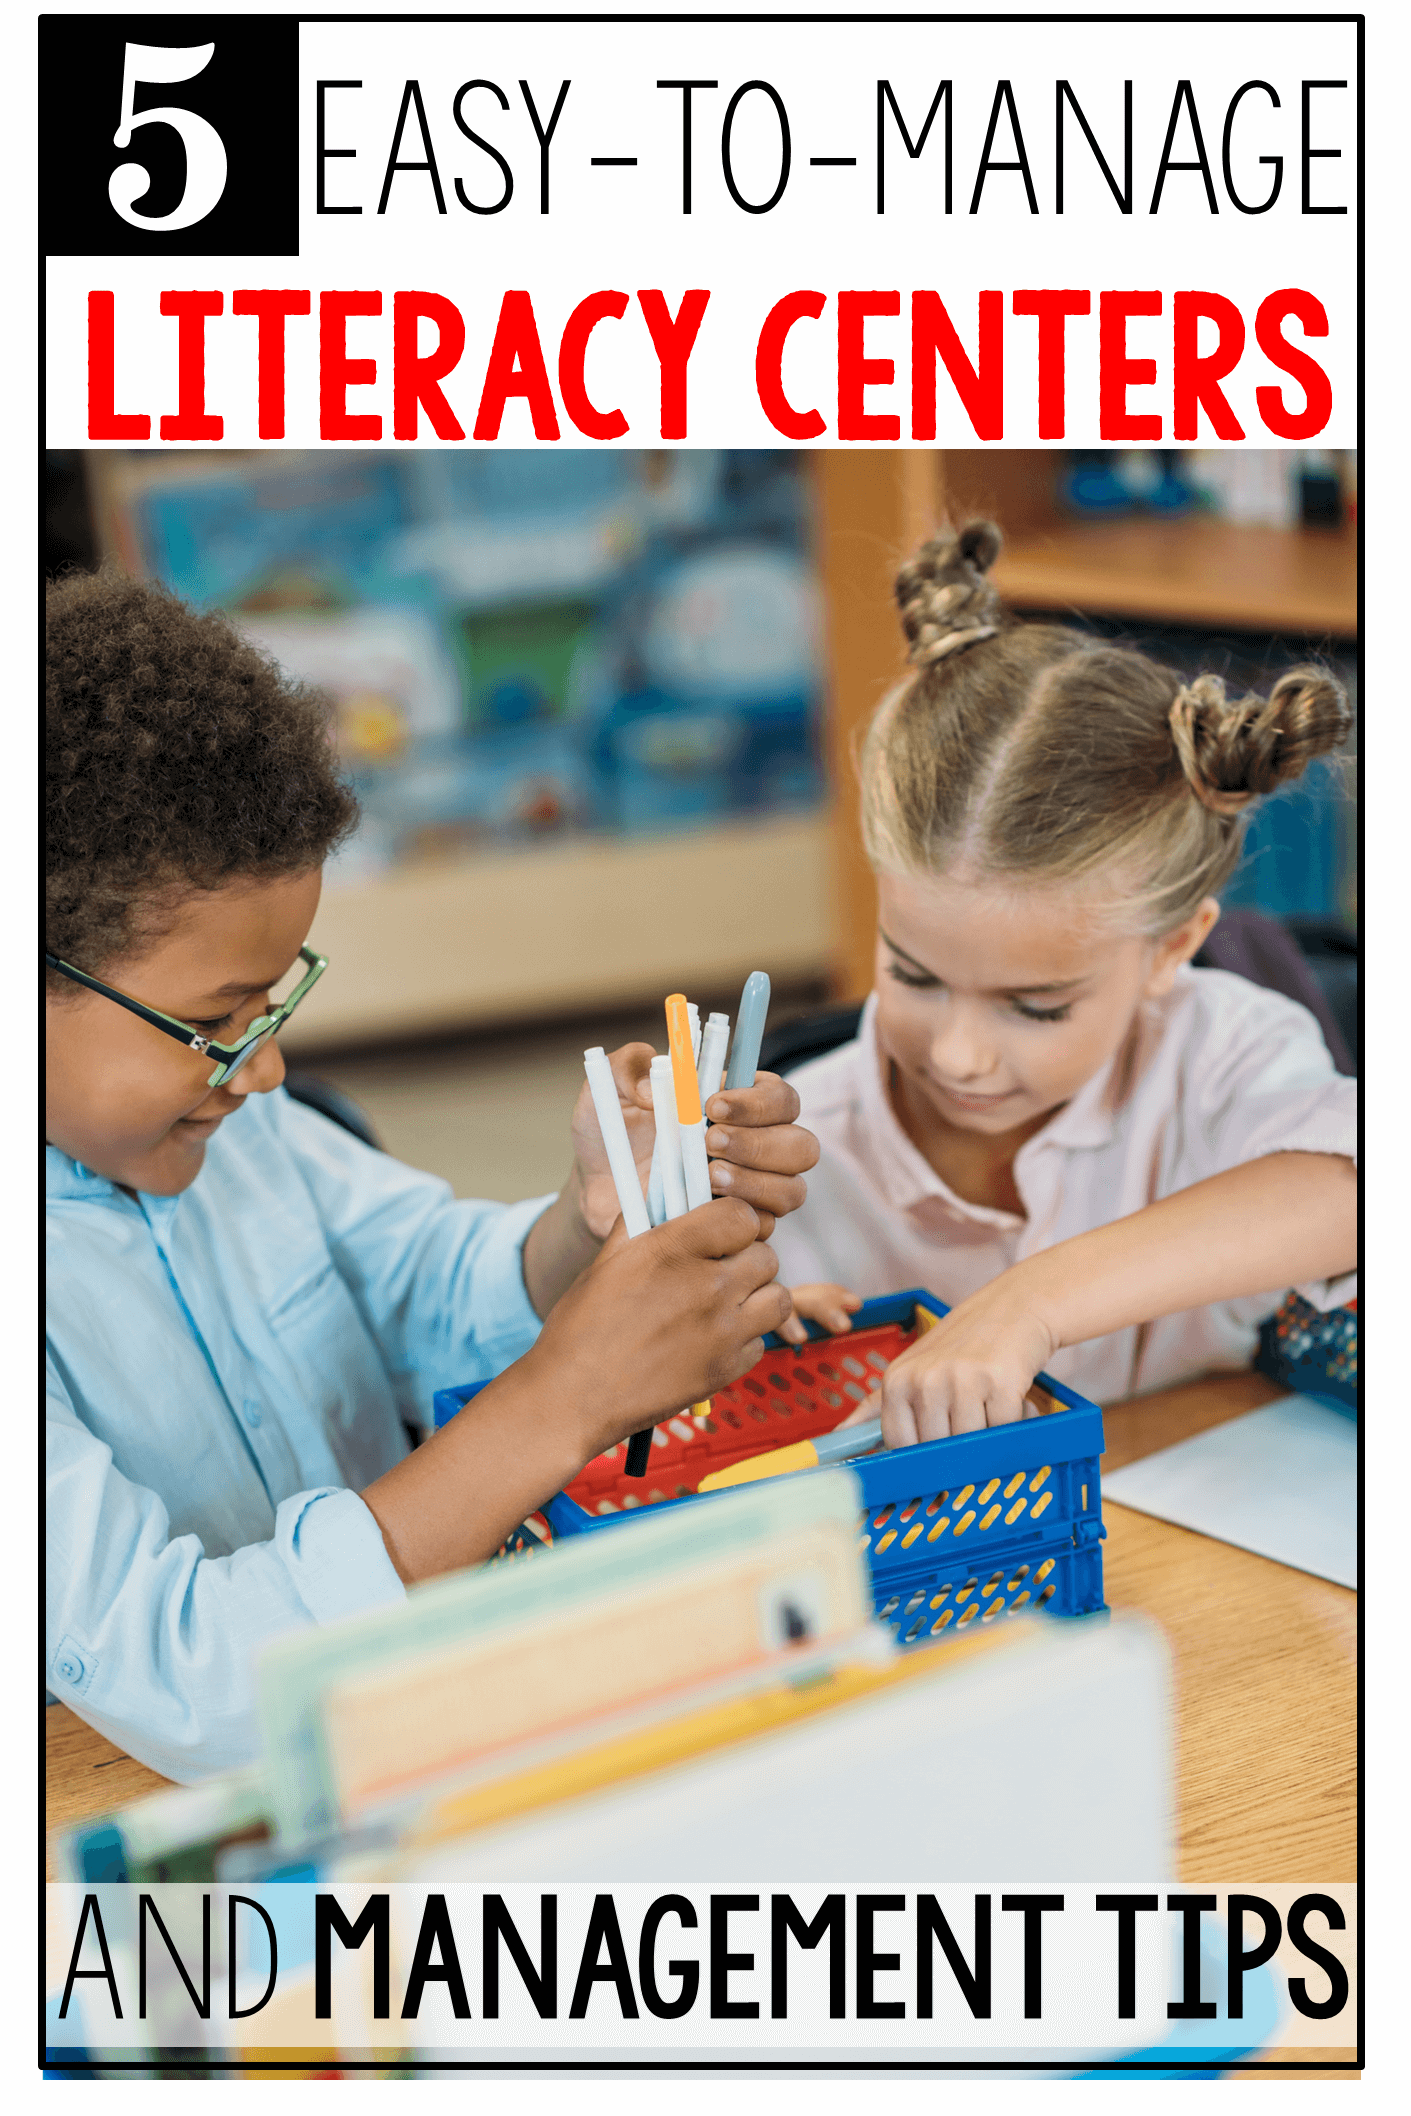 5 Anchor Literacy Centers and Management Tips